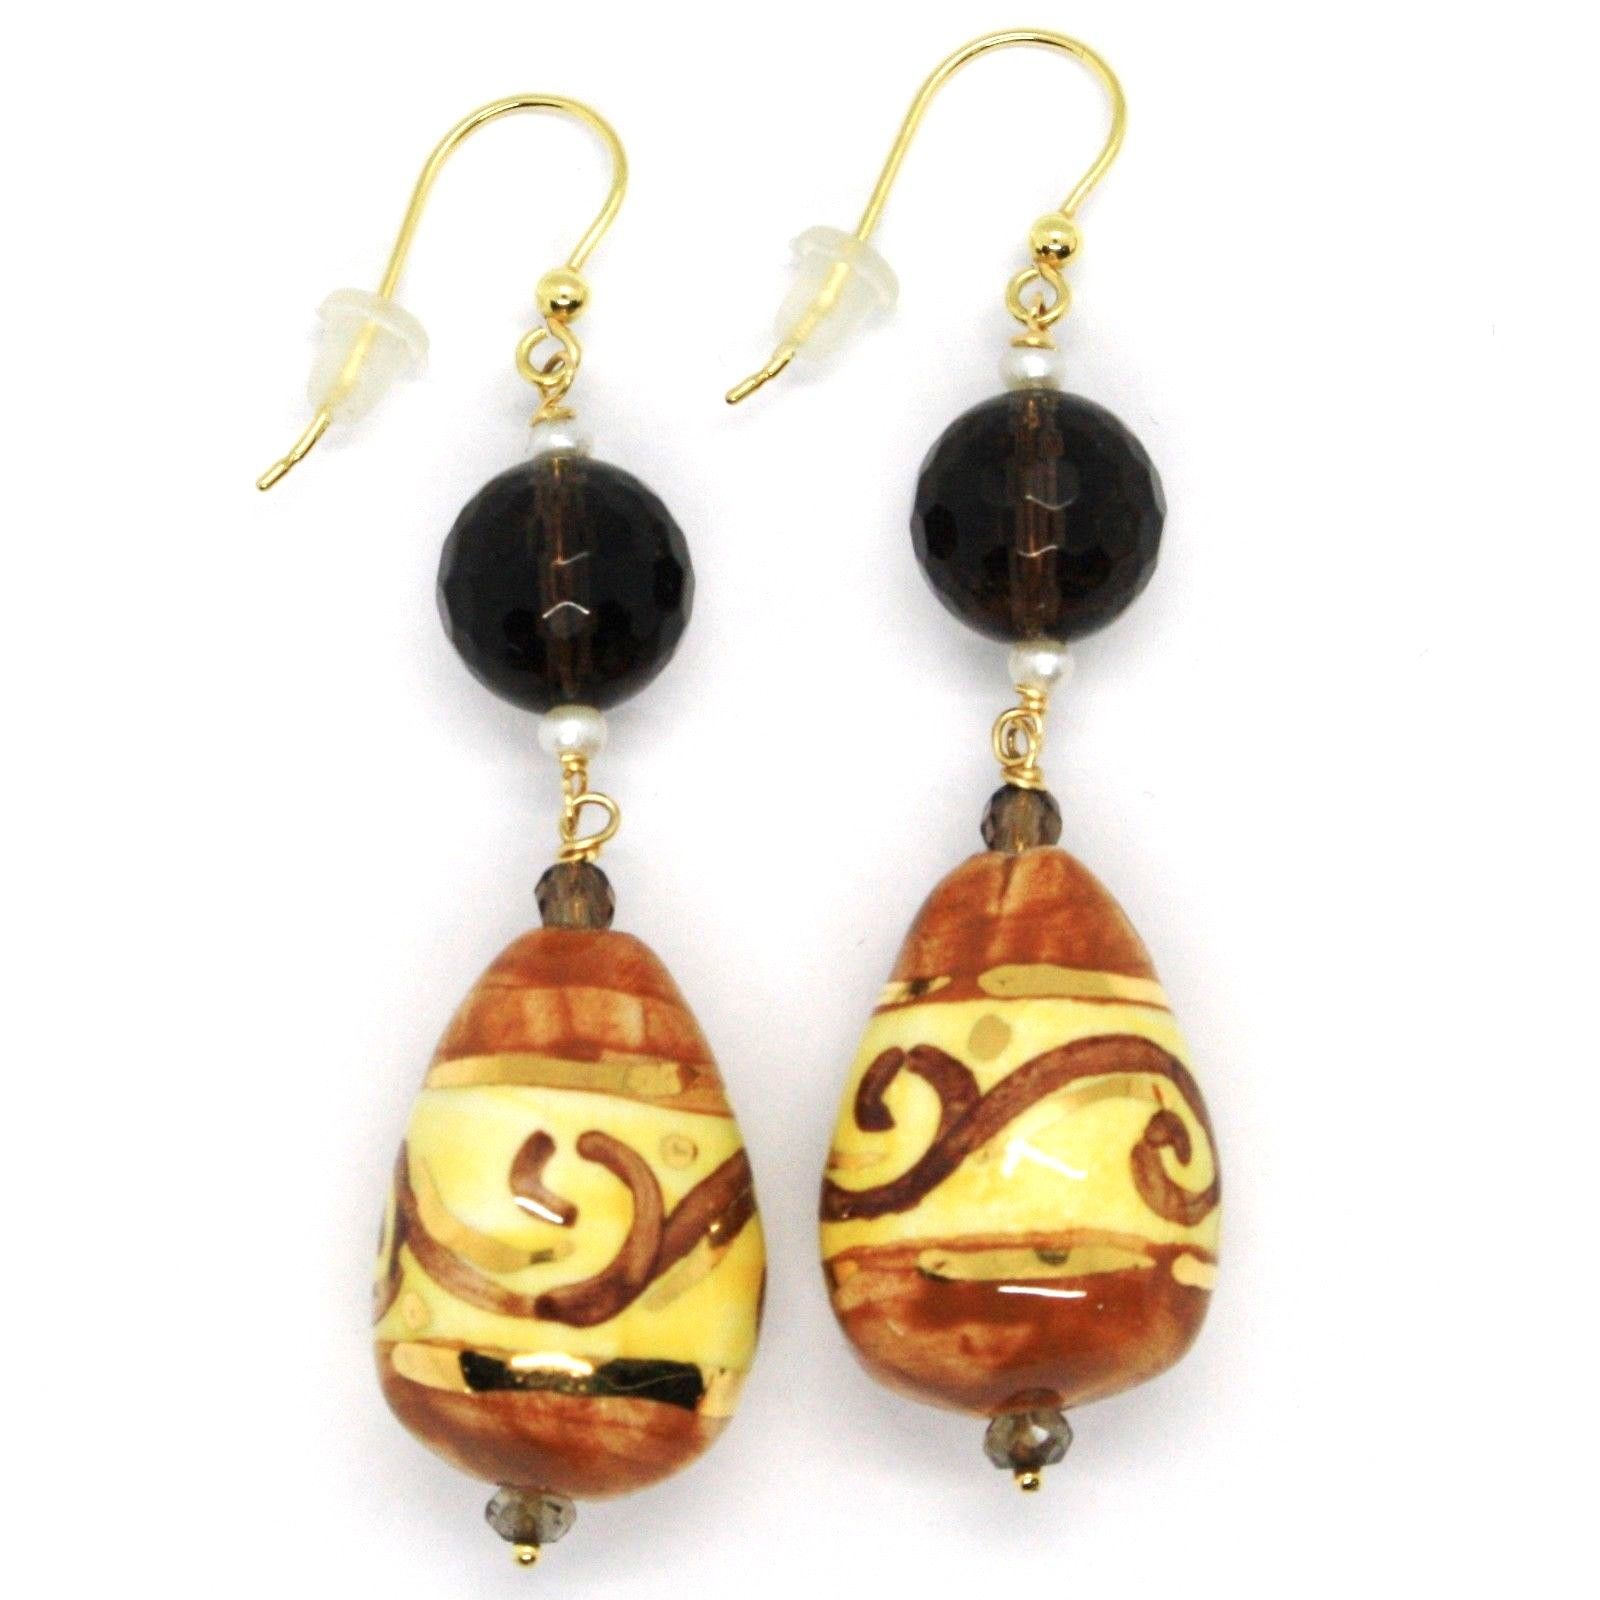 18K YELLOW GOLD EARRINGS SMOKY QUARTZ POTTERY CERAMIC DROP HAND PAINTED IN ITALY